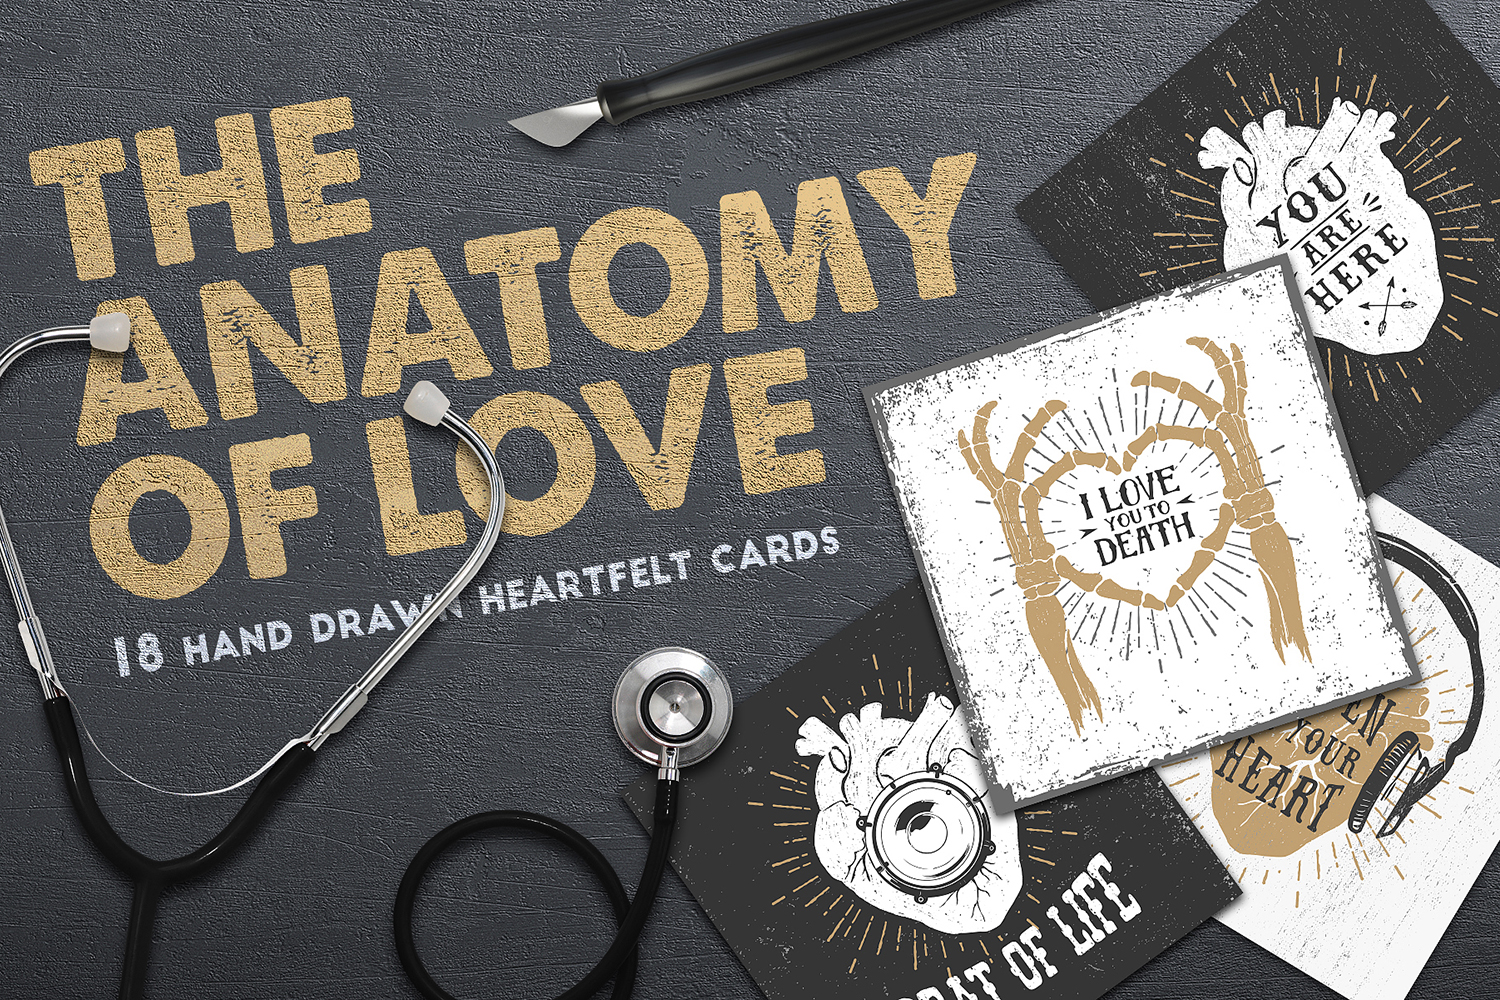 The Anatomy of Live - 18 Hand Drawn Heartfelt Cards Grafik von Cosmic Store